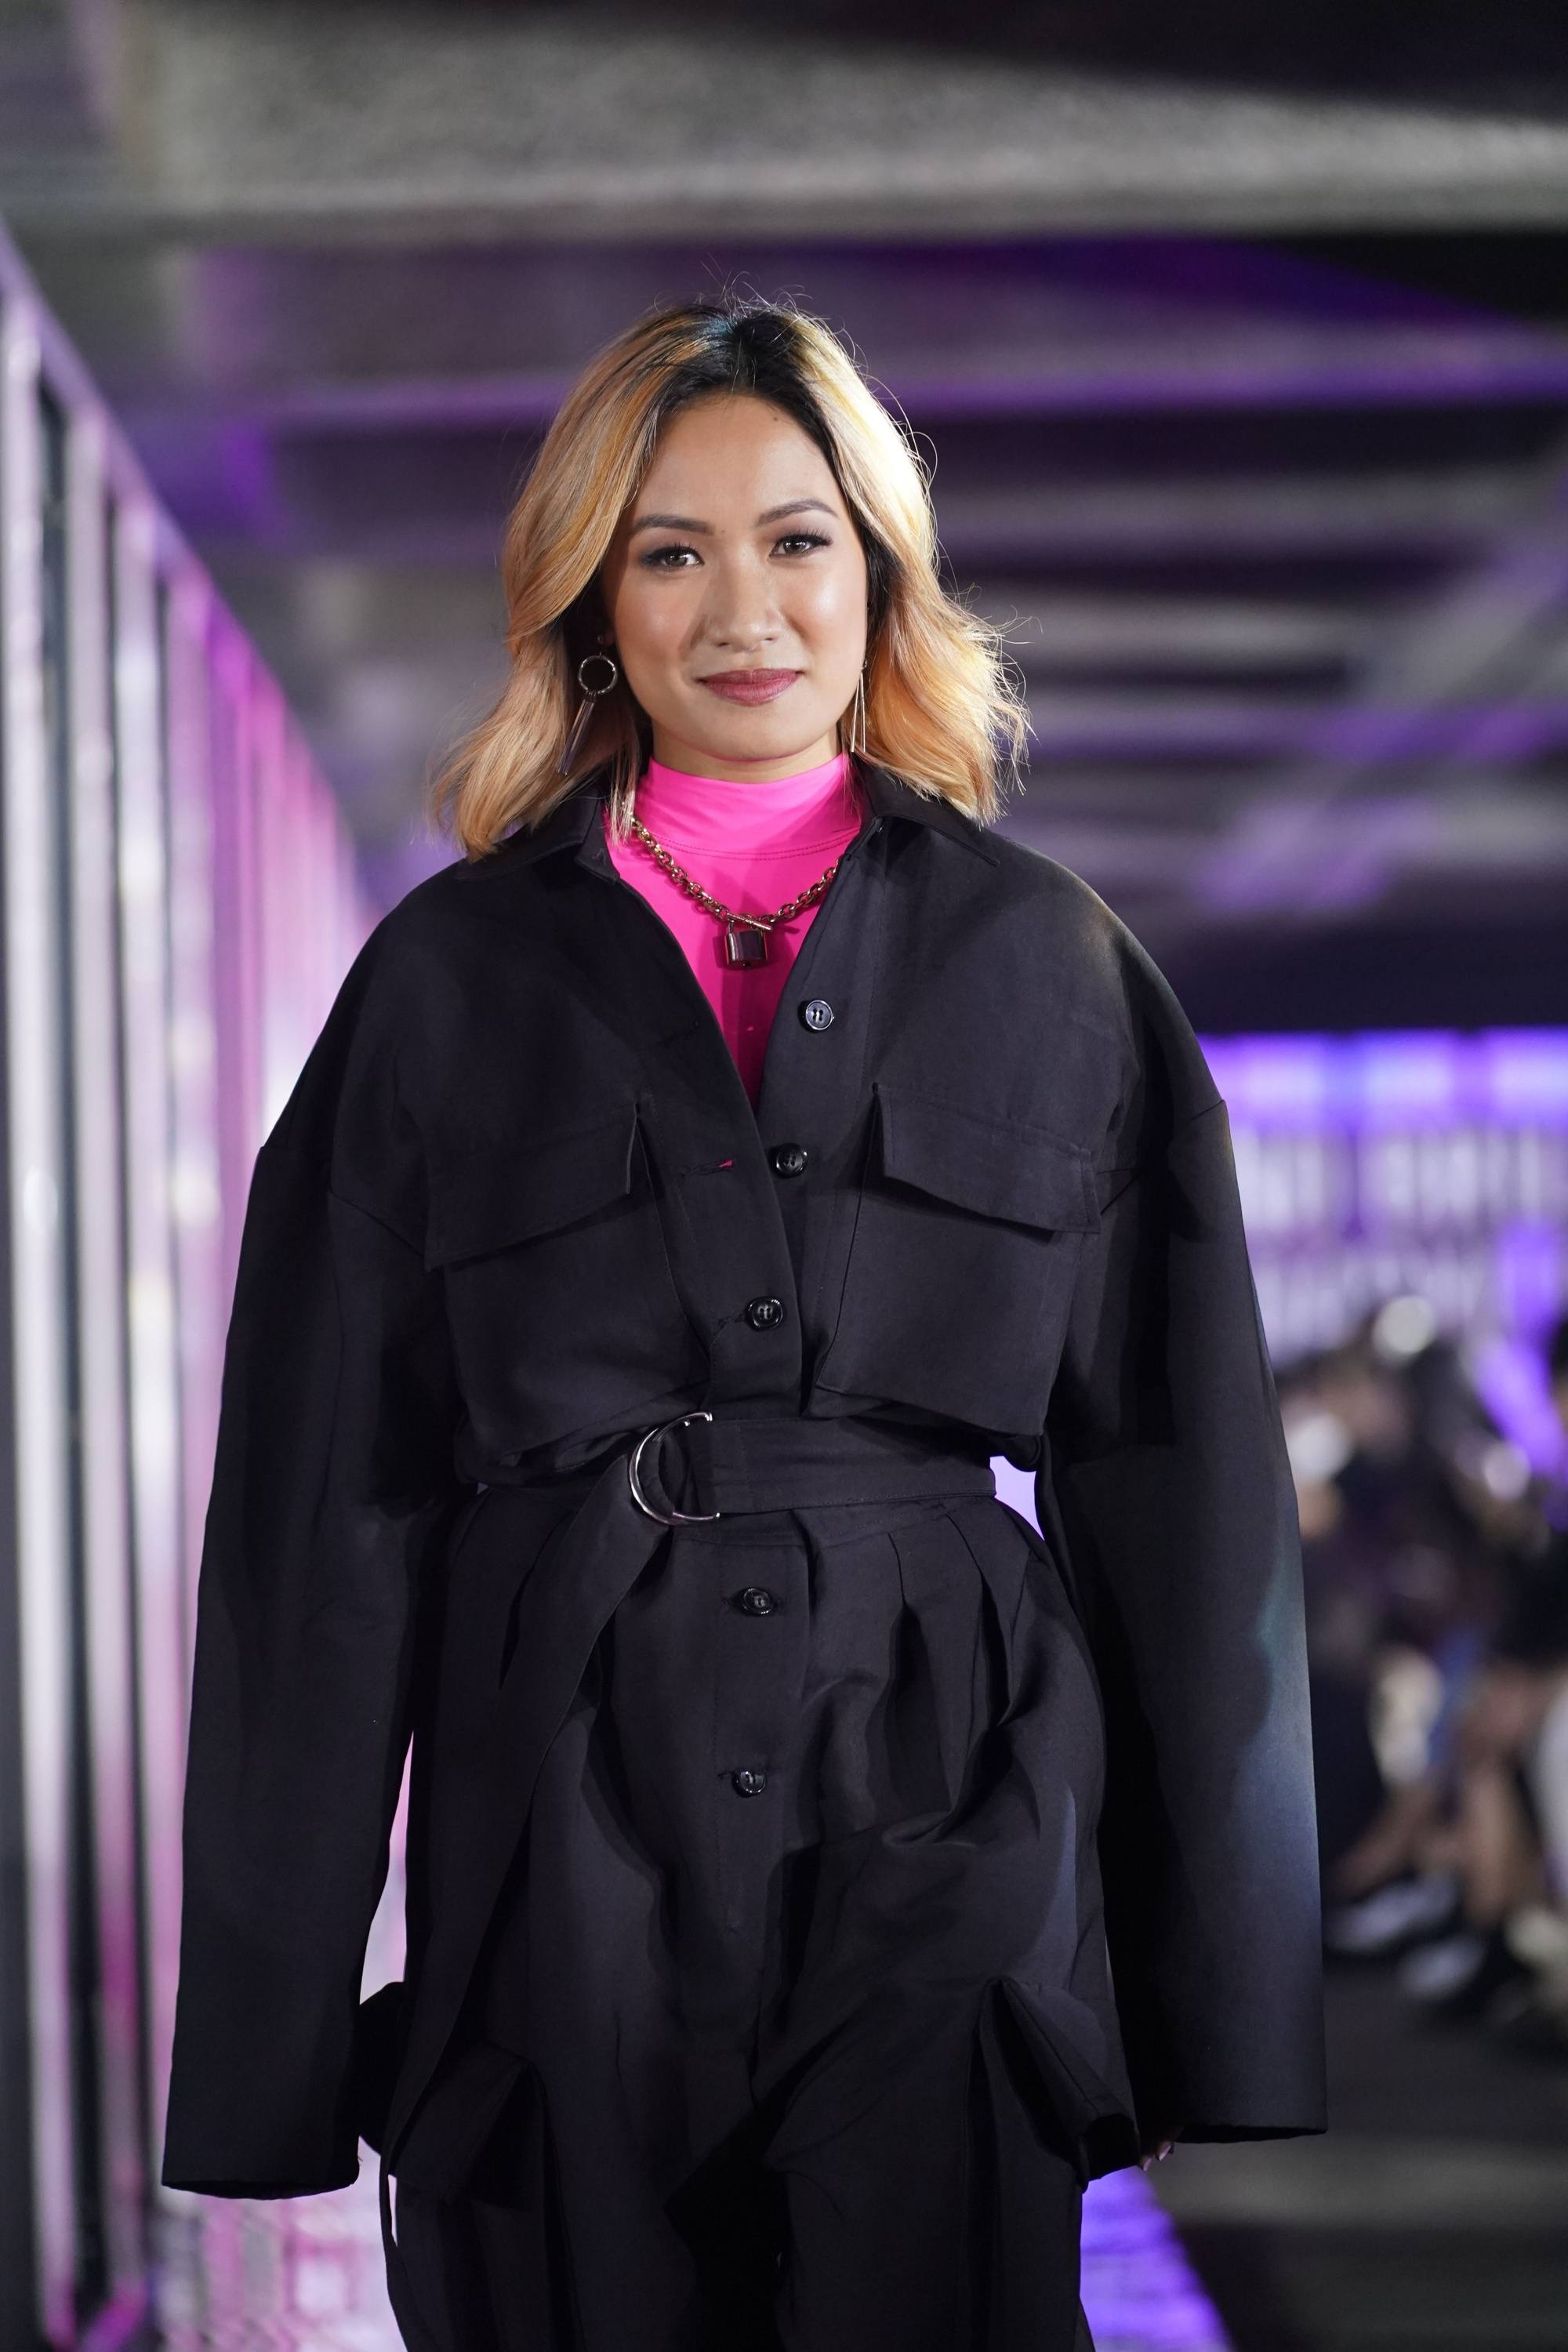 Laureen Uy with her peachy blonde on the runway